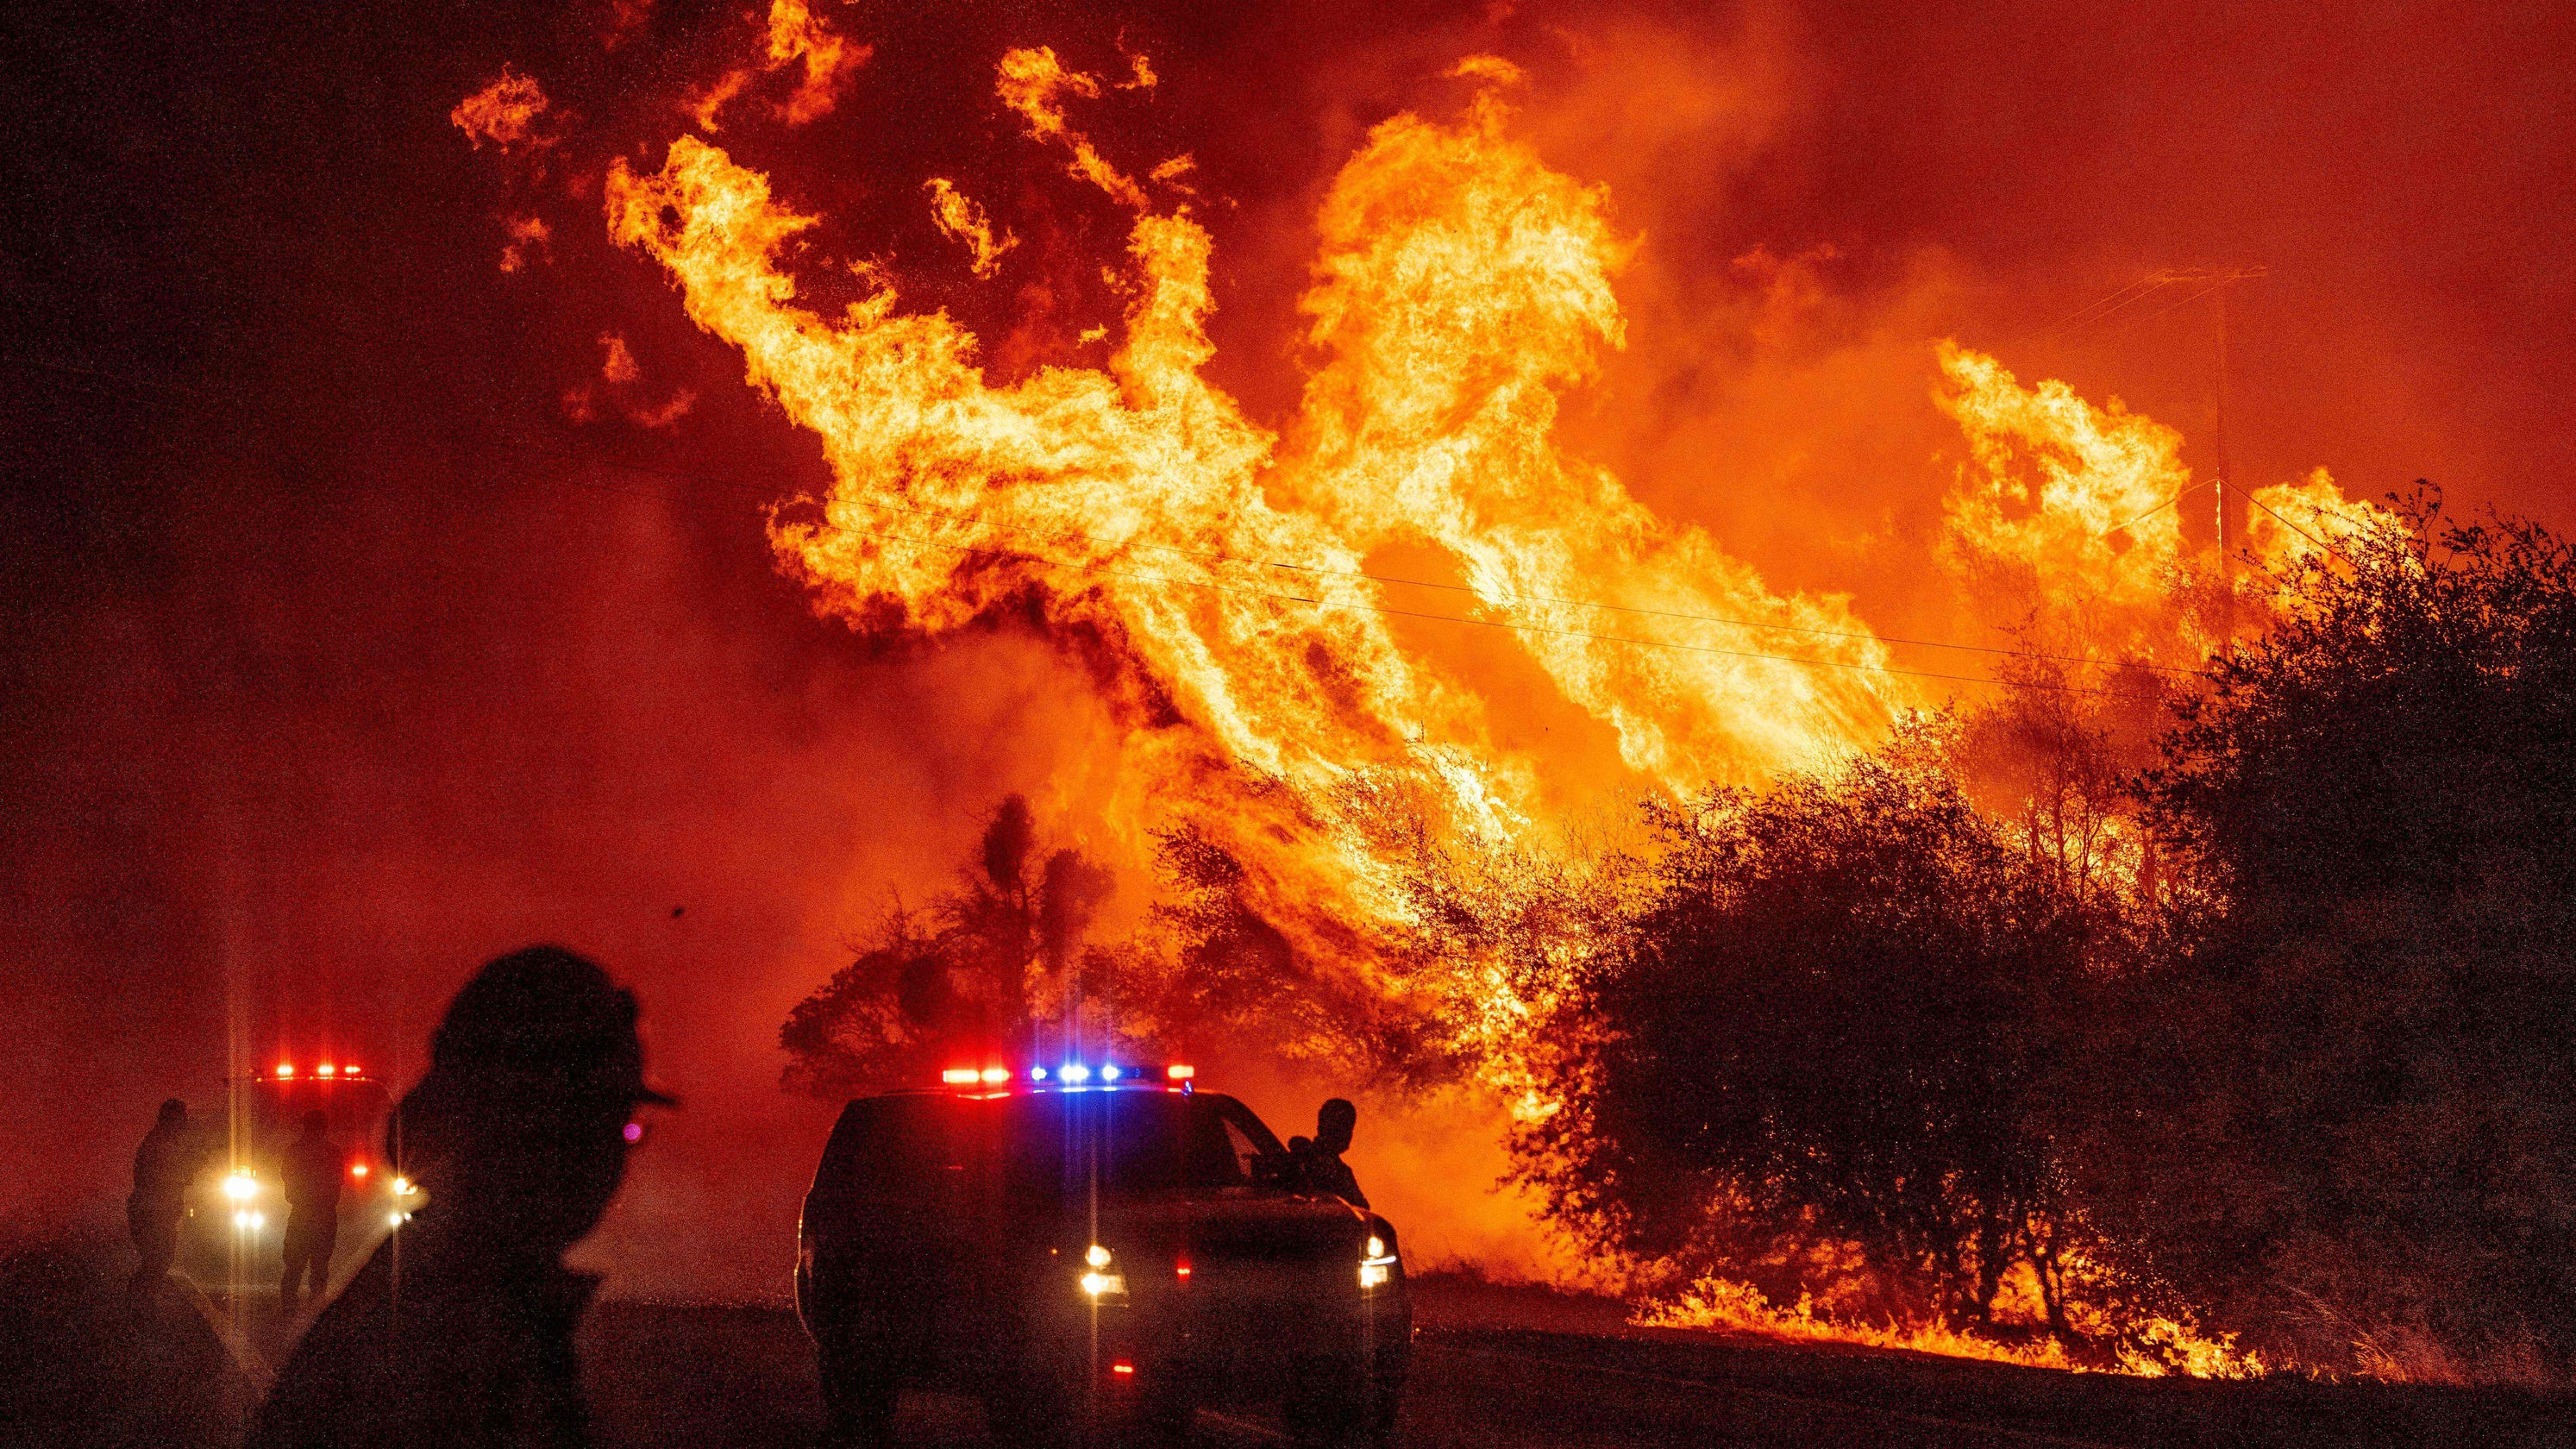 'Unprecedented' wildfires burn across West: California firefighters injured Oregon residents flee flames – USA TODAY